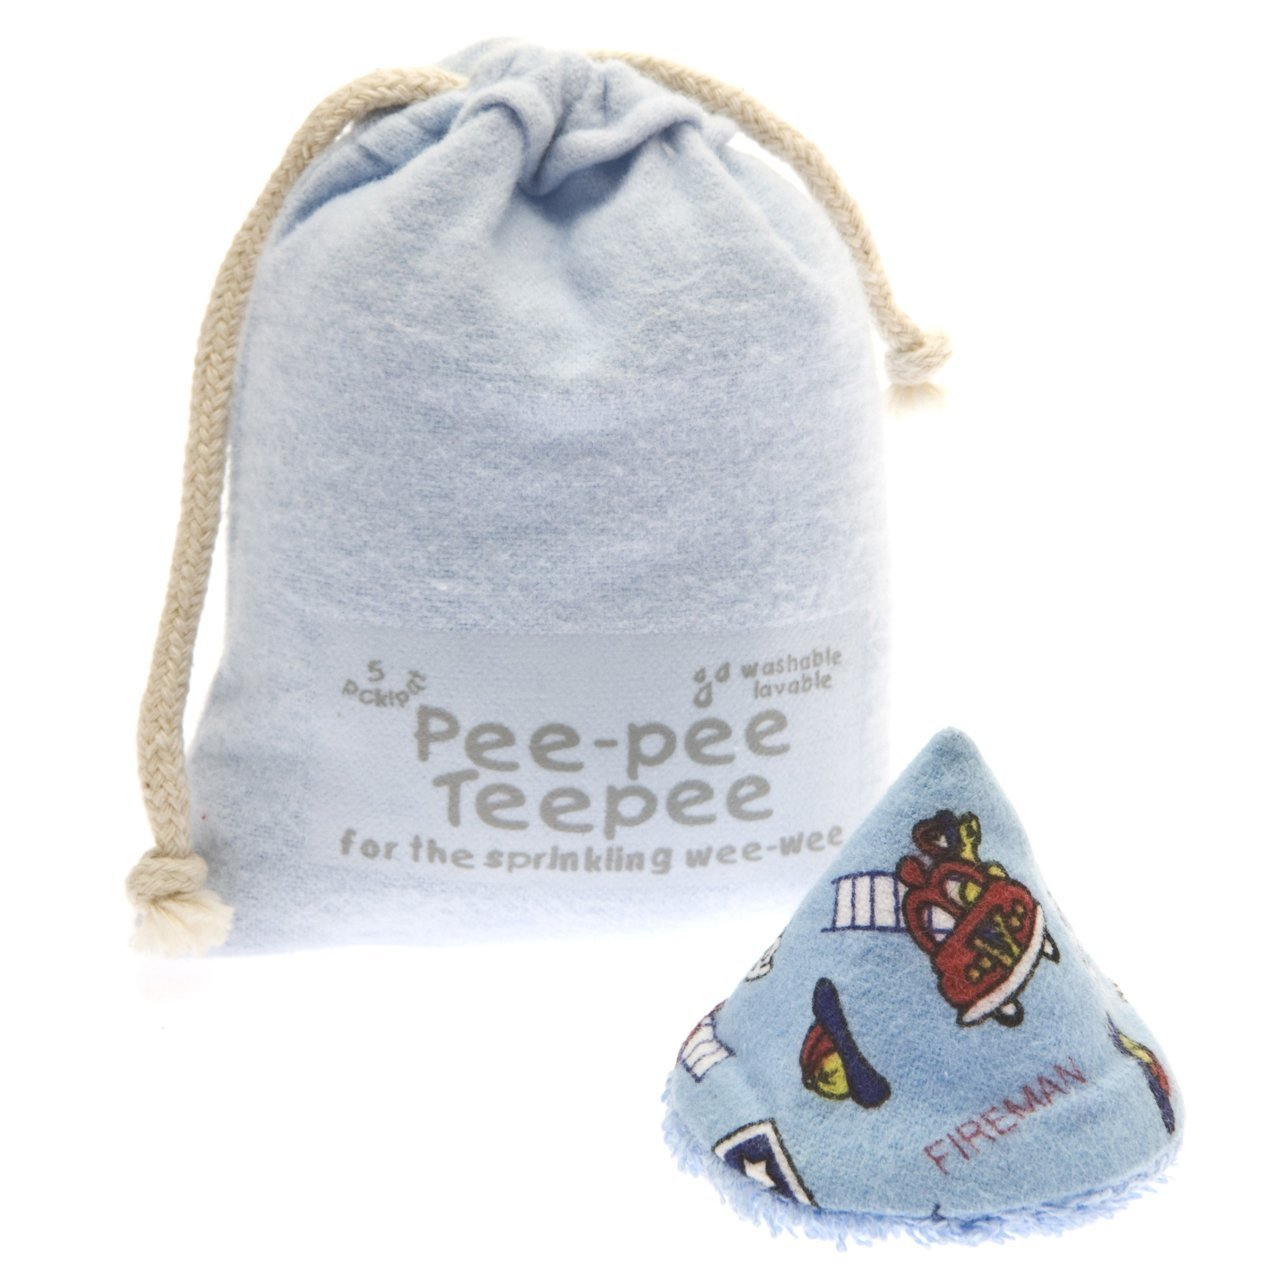 Pee-pee Teepee Fishing Blue - Laundry Bag Beba Bean PT3076